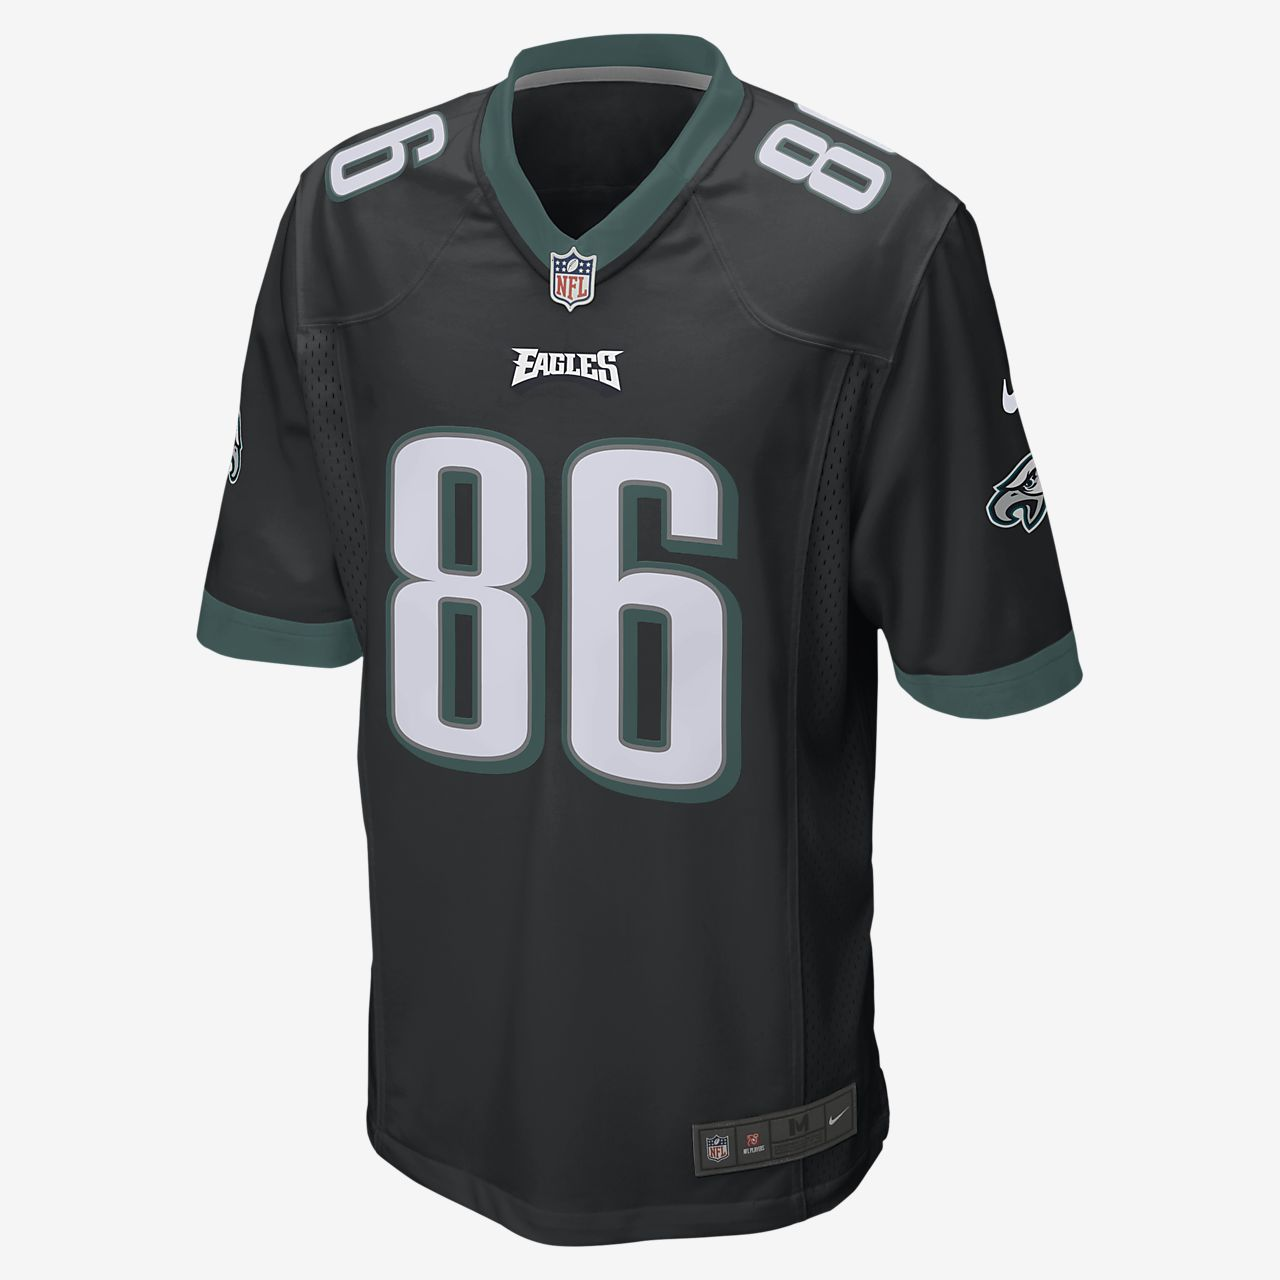 new product a299d 0b05e NFL Philadelphia Eagles Game Men's Football Jersey